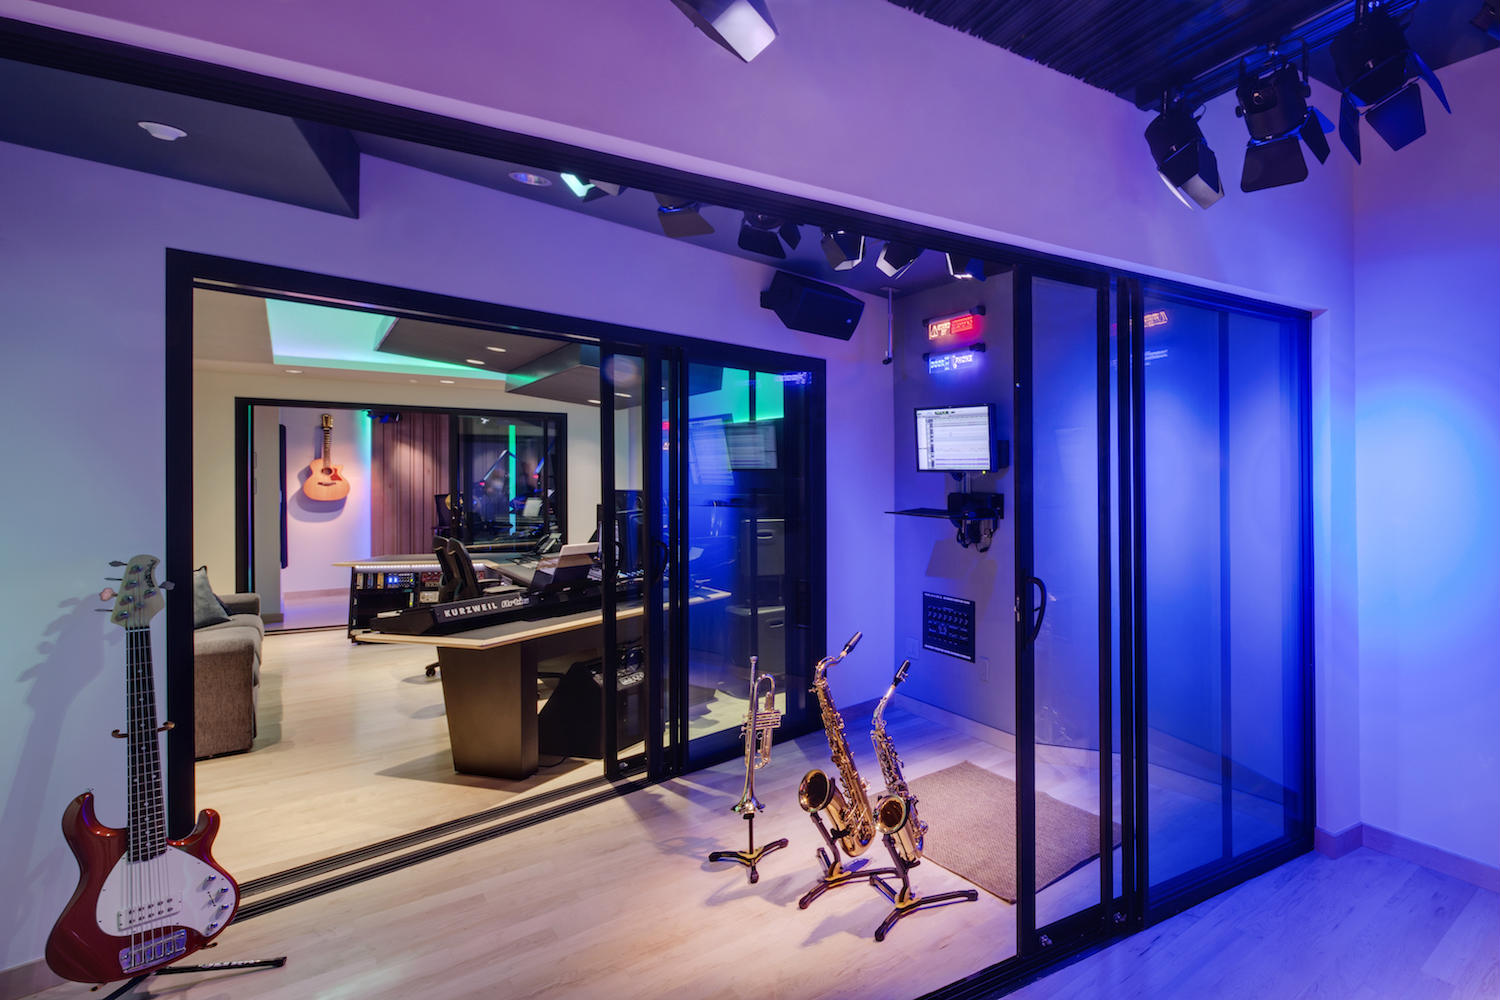 The MacPhails met WSDG to achieve a full up, professionally designed, acoustically superlative residential recording studio for their thriving audio production business. ISO Booths Connectivity.